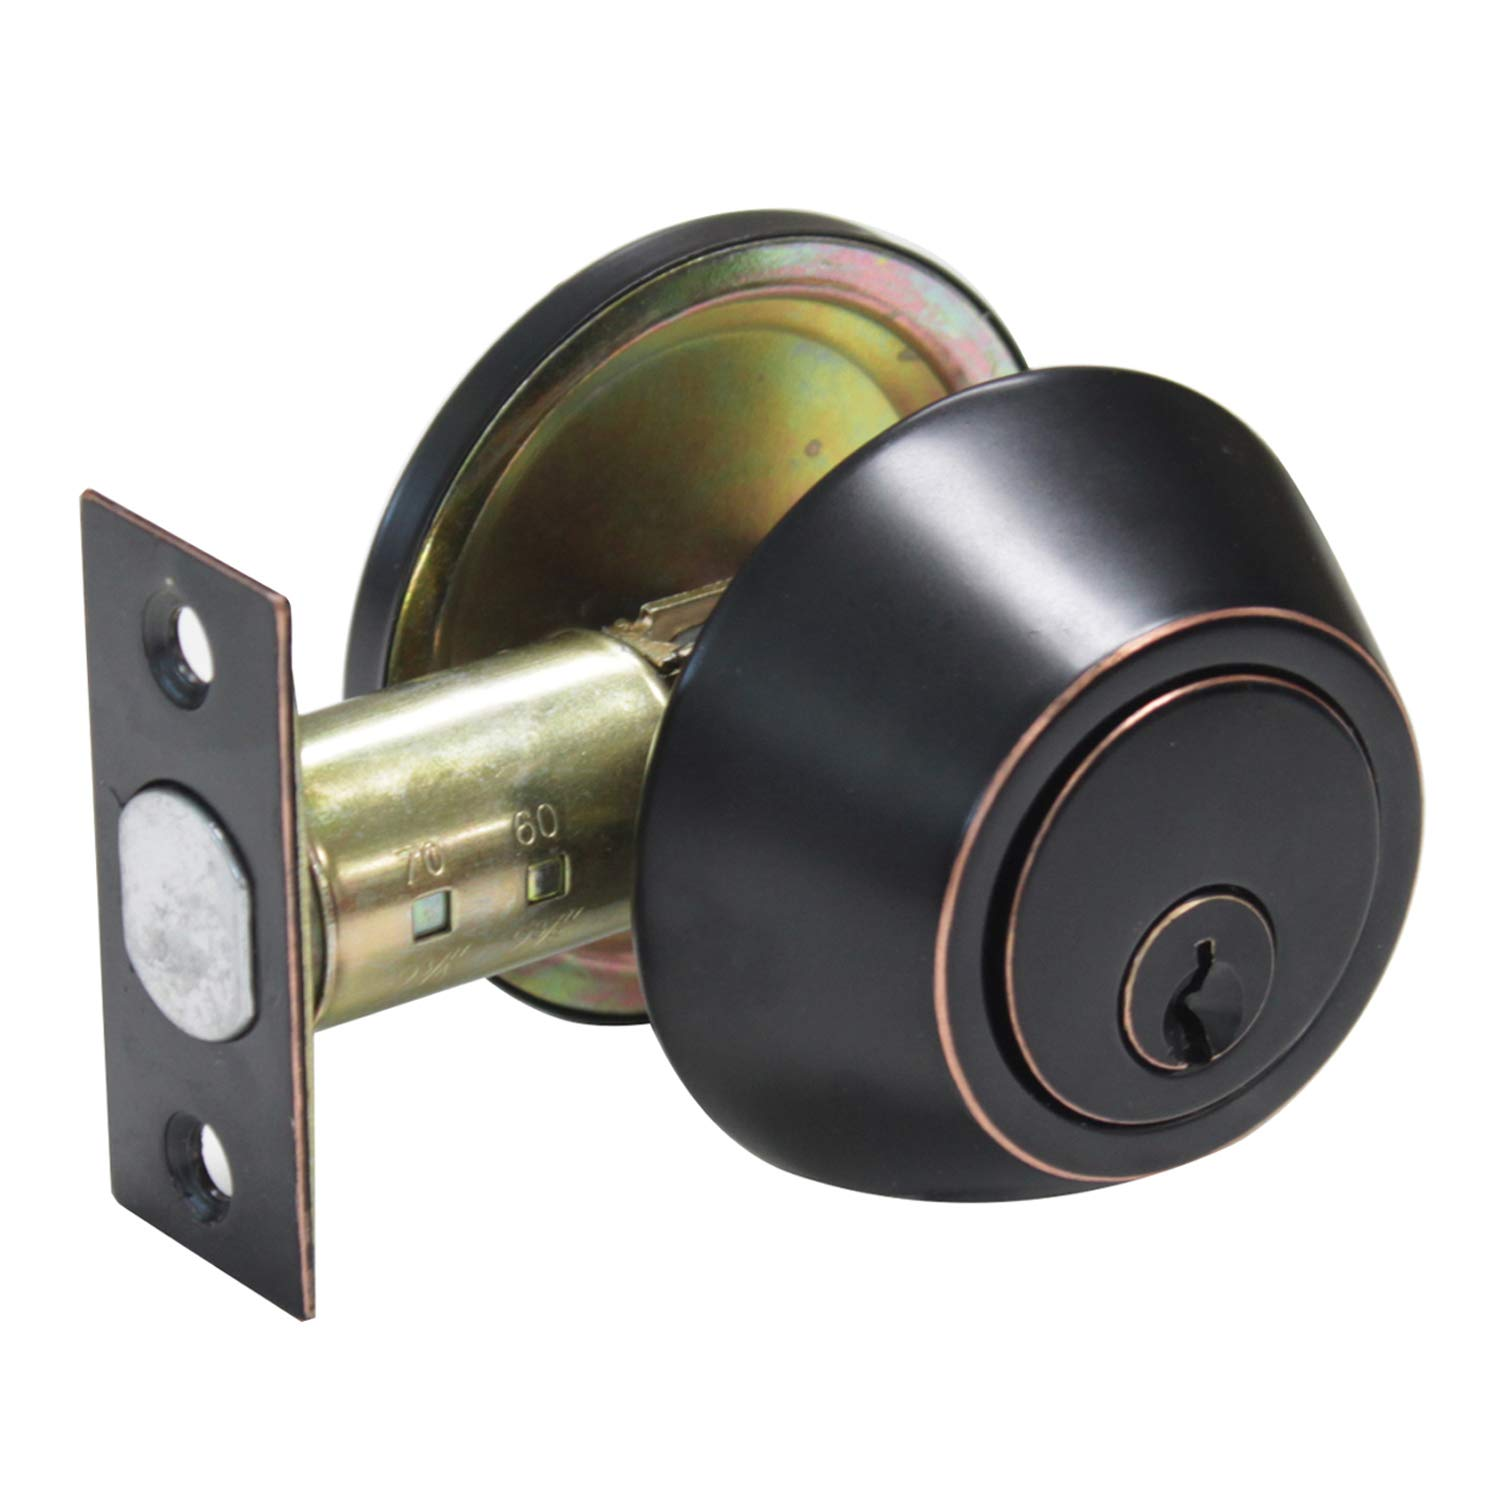 Door Hardware & Locks Single Cylinder Deadbolt Featuring SmartKey in Oil Rubbed Bronze Finish, Thumb Turn Button Inside And Key Outside